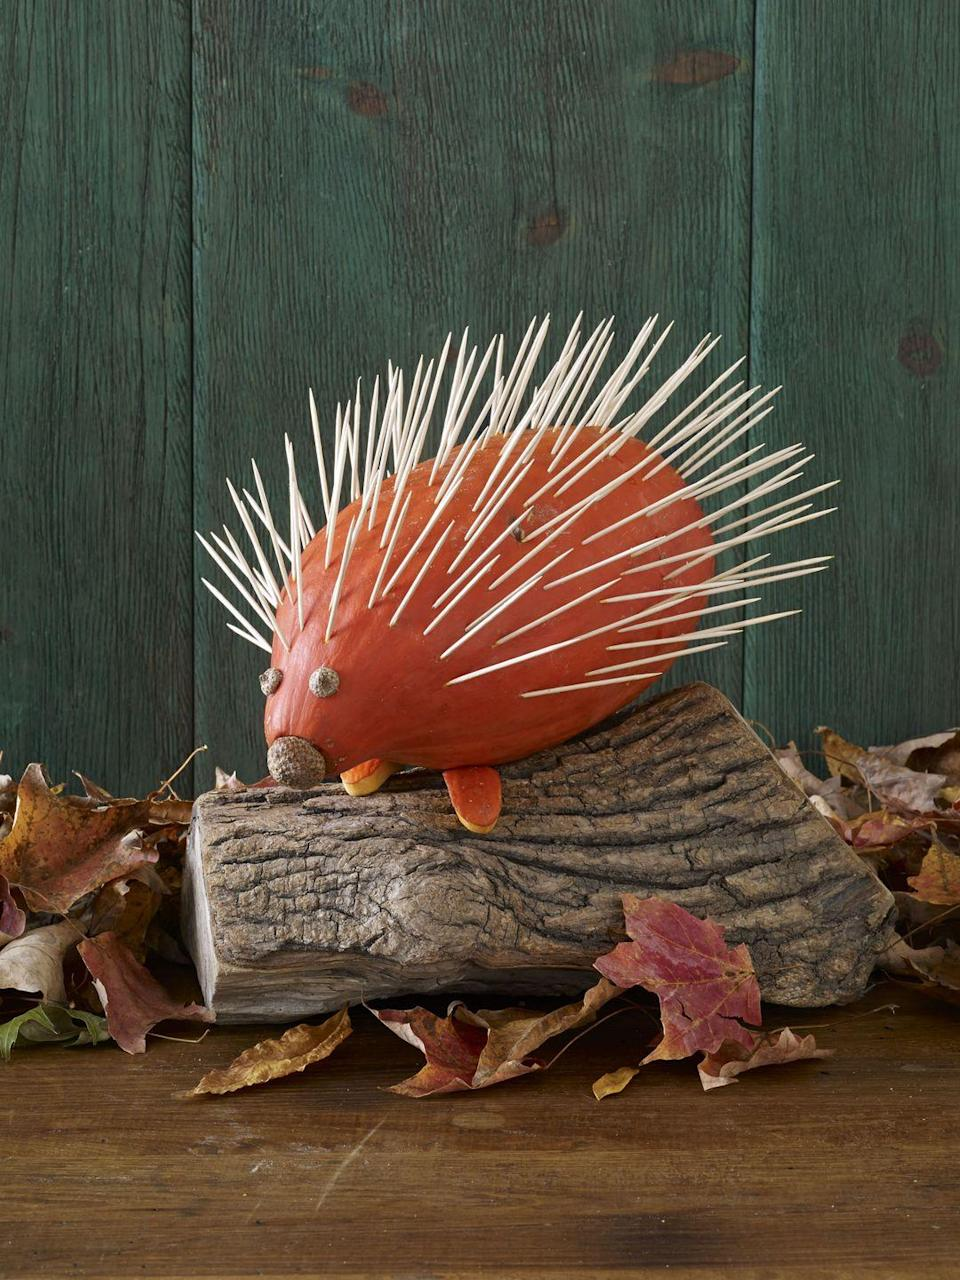 <p>Turn a squash into a cute little hedgehog by sticking toothpicks all over the top. Add tiny acorns for eyes and a nose. </p>